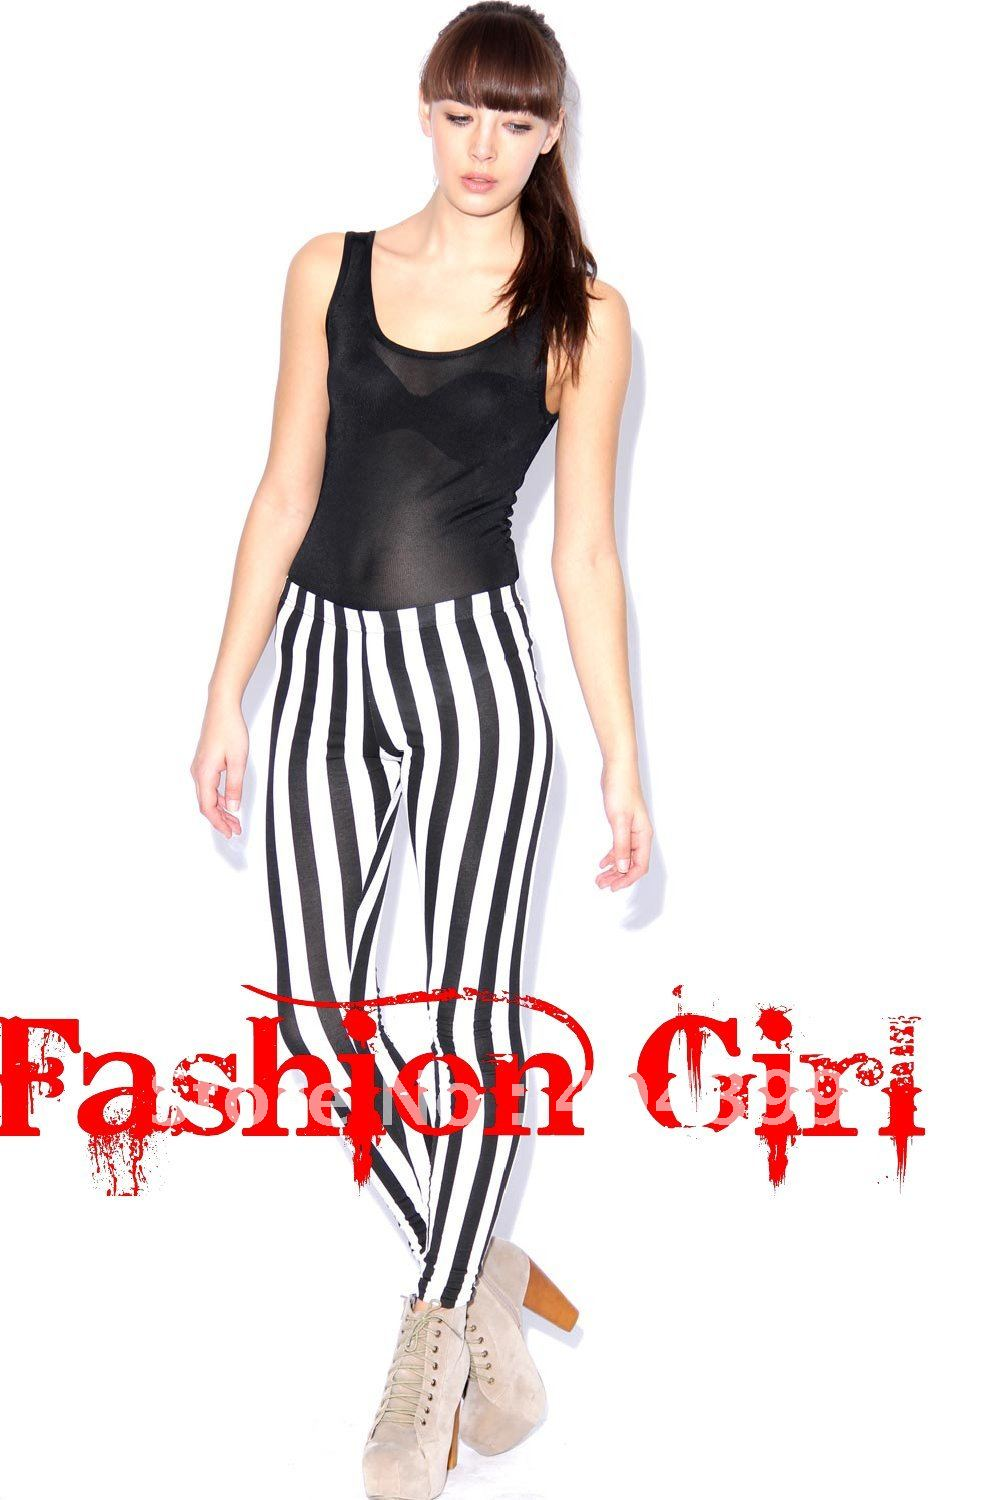 Patterned Leggings Fad | MHSMustangNews.com